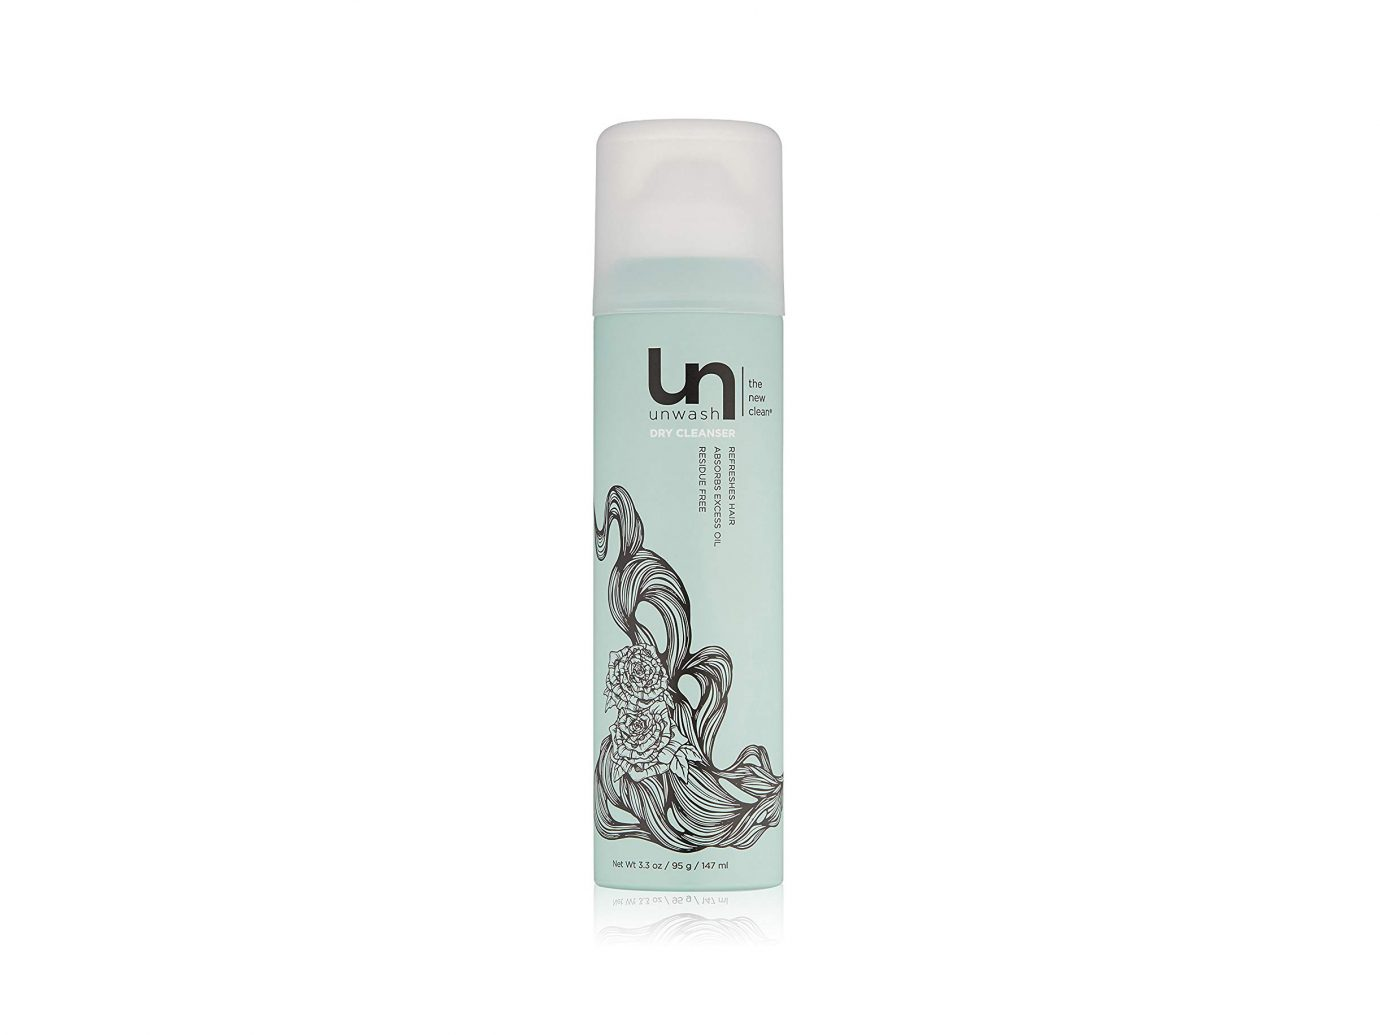 Unwash Dry Cleanser Spray